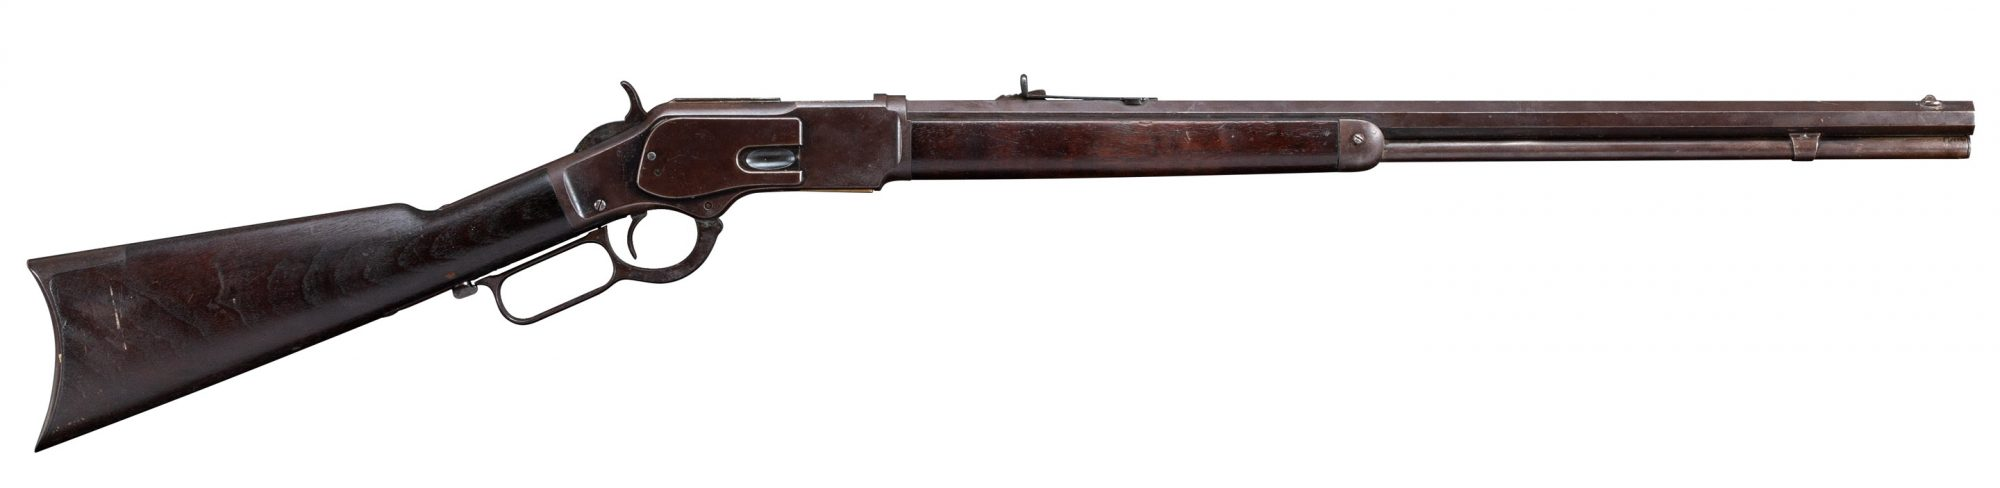 Photo of a Winchester Model 1873 from 1905, before restoration by Turnbull Restoration of Bloomfield, NY